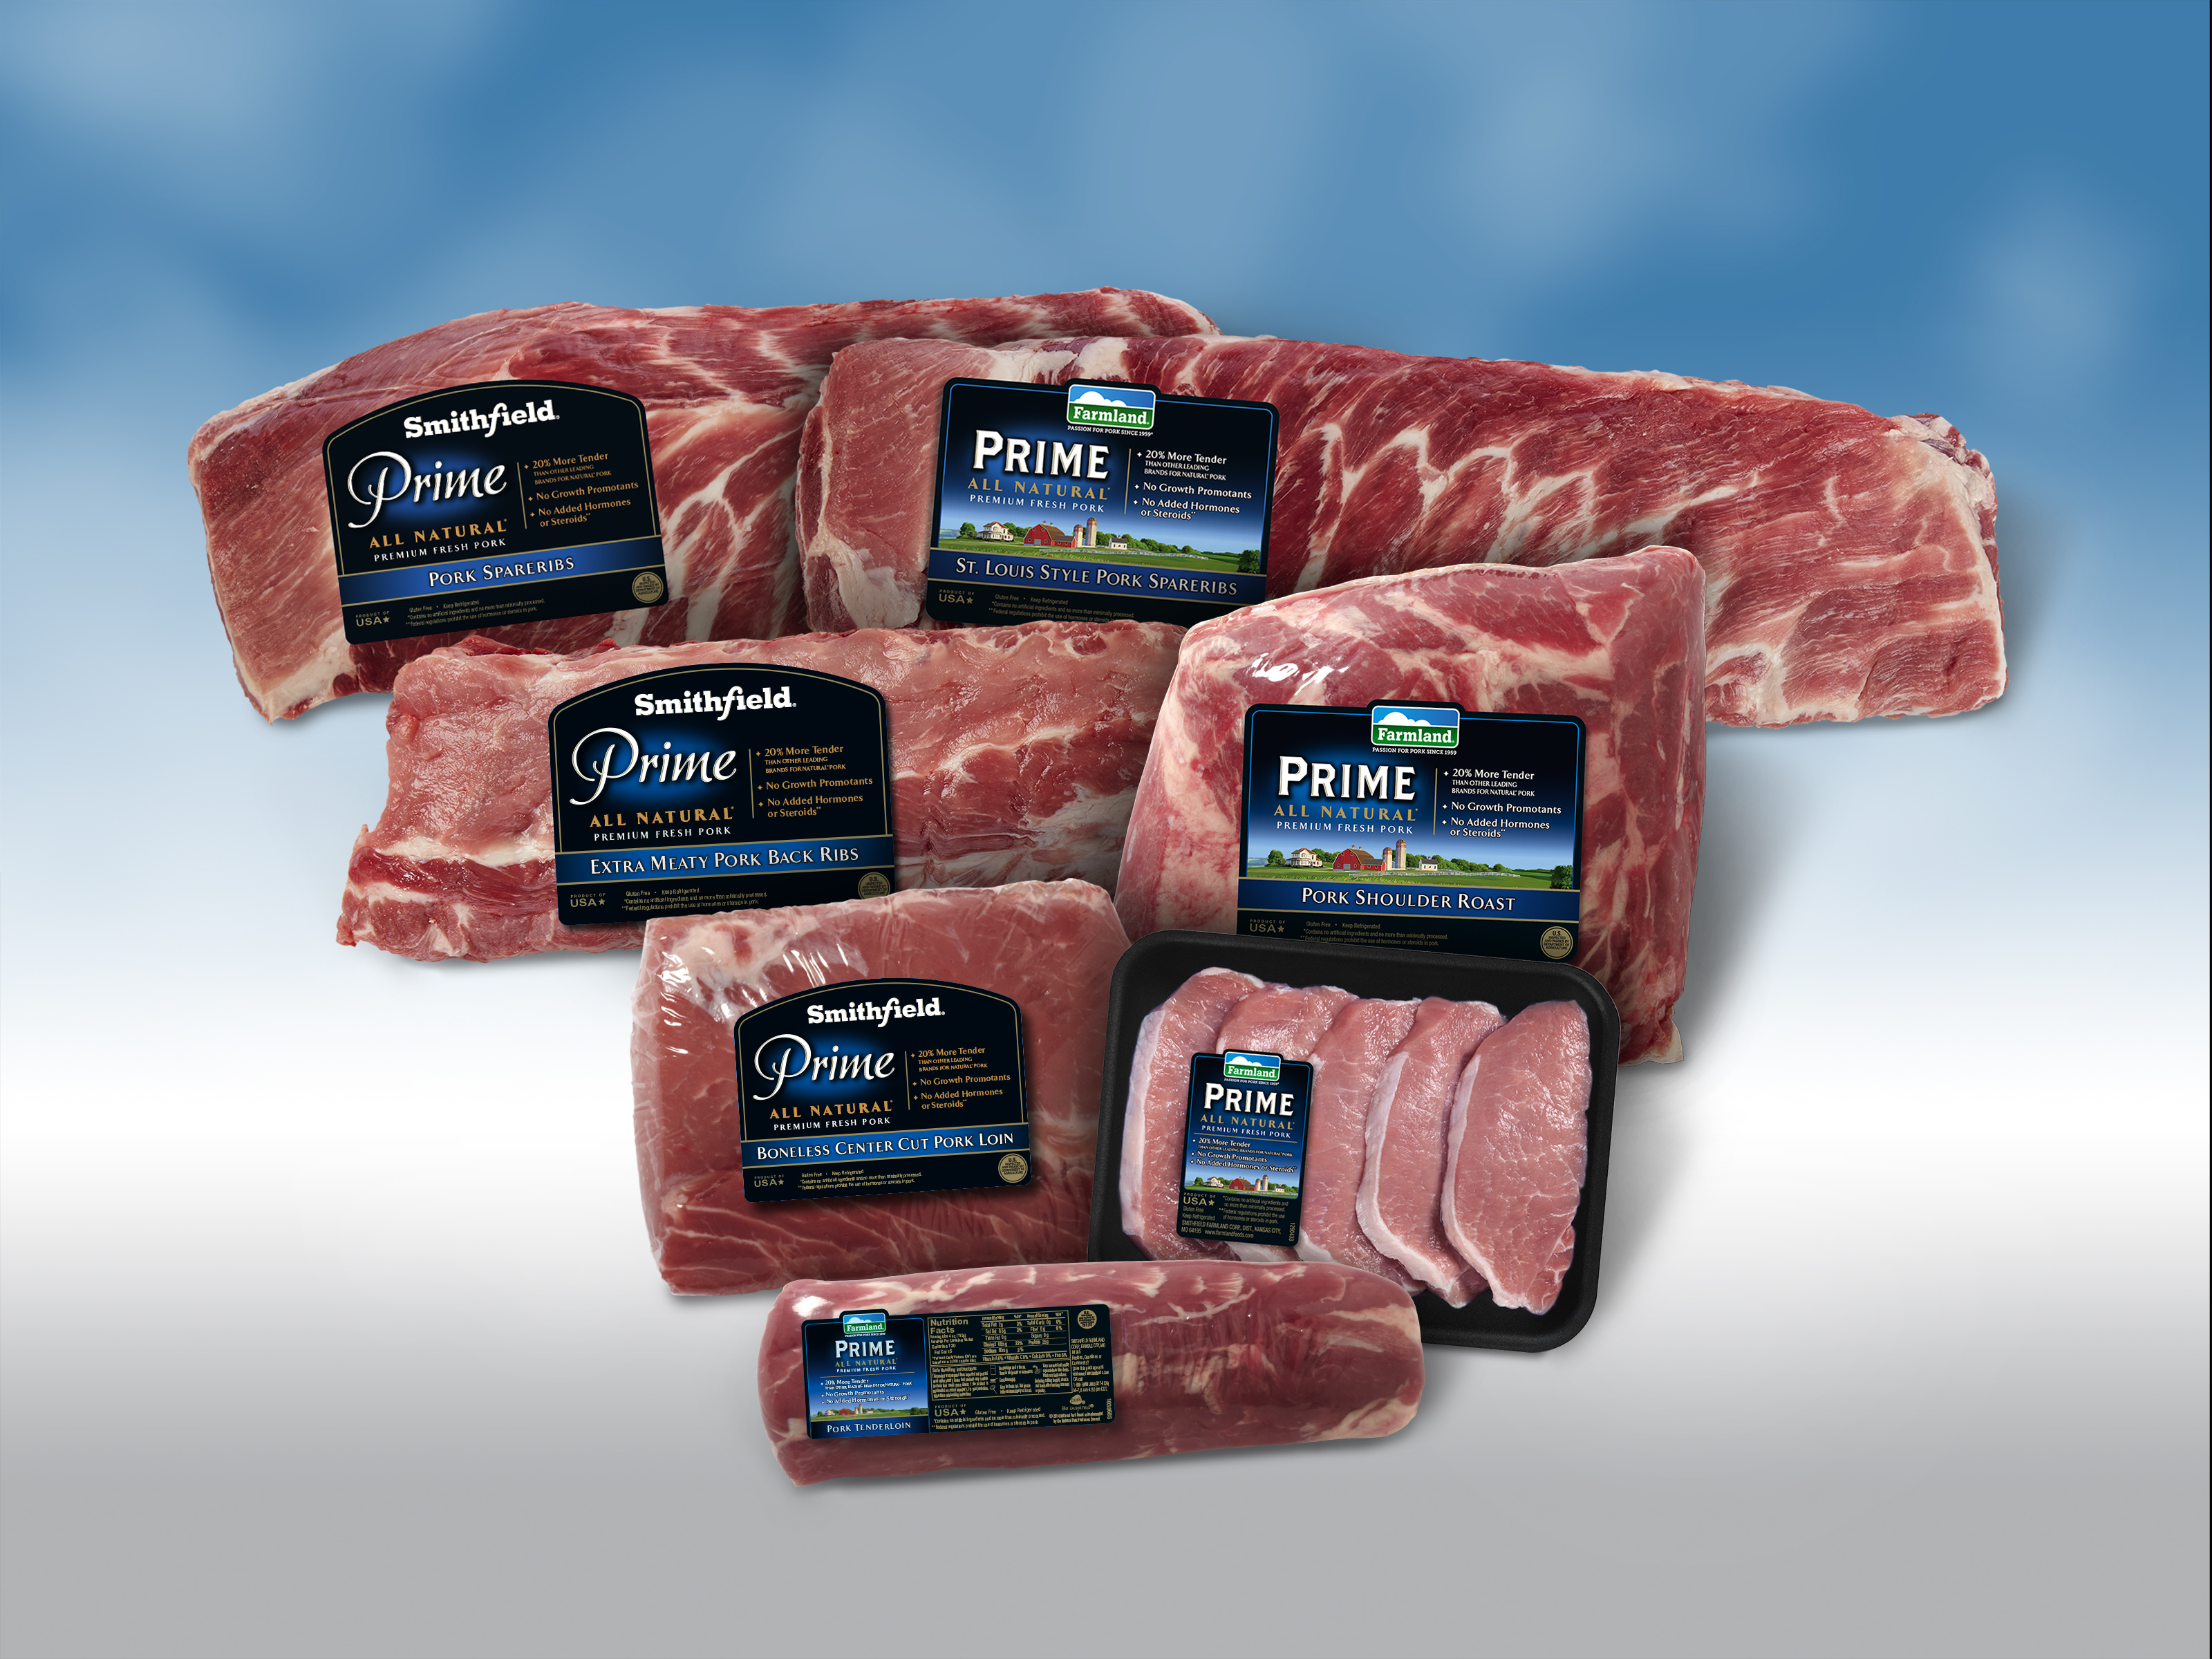 $2 Smithfield Pork Coupon For Upcoming Publix Sale - Great Deal!